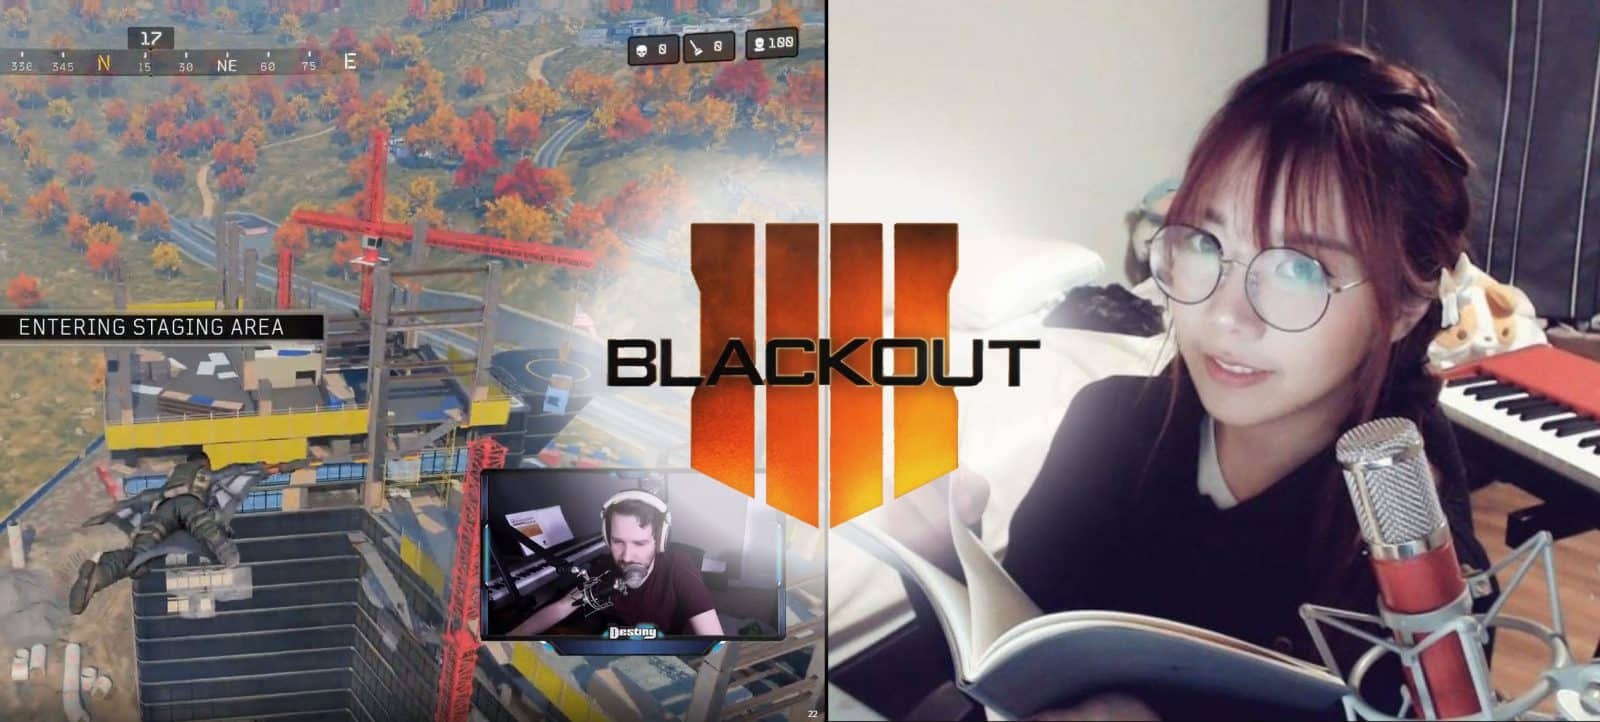 Destiny Has Awkward Encounter With LilyPichu Call of Duty Blackout Stream